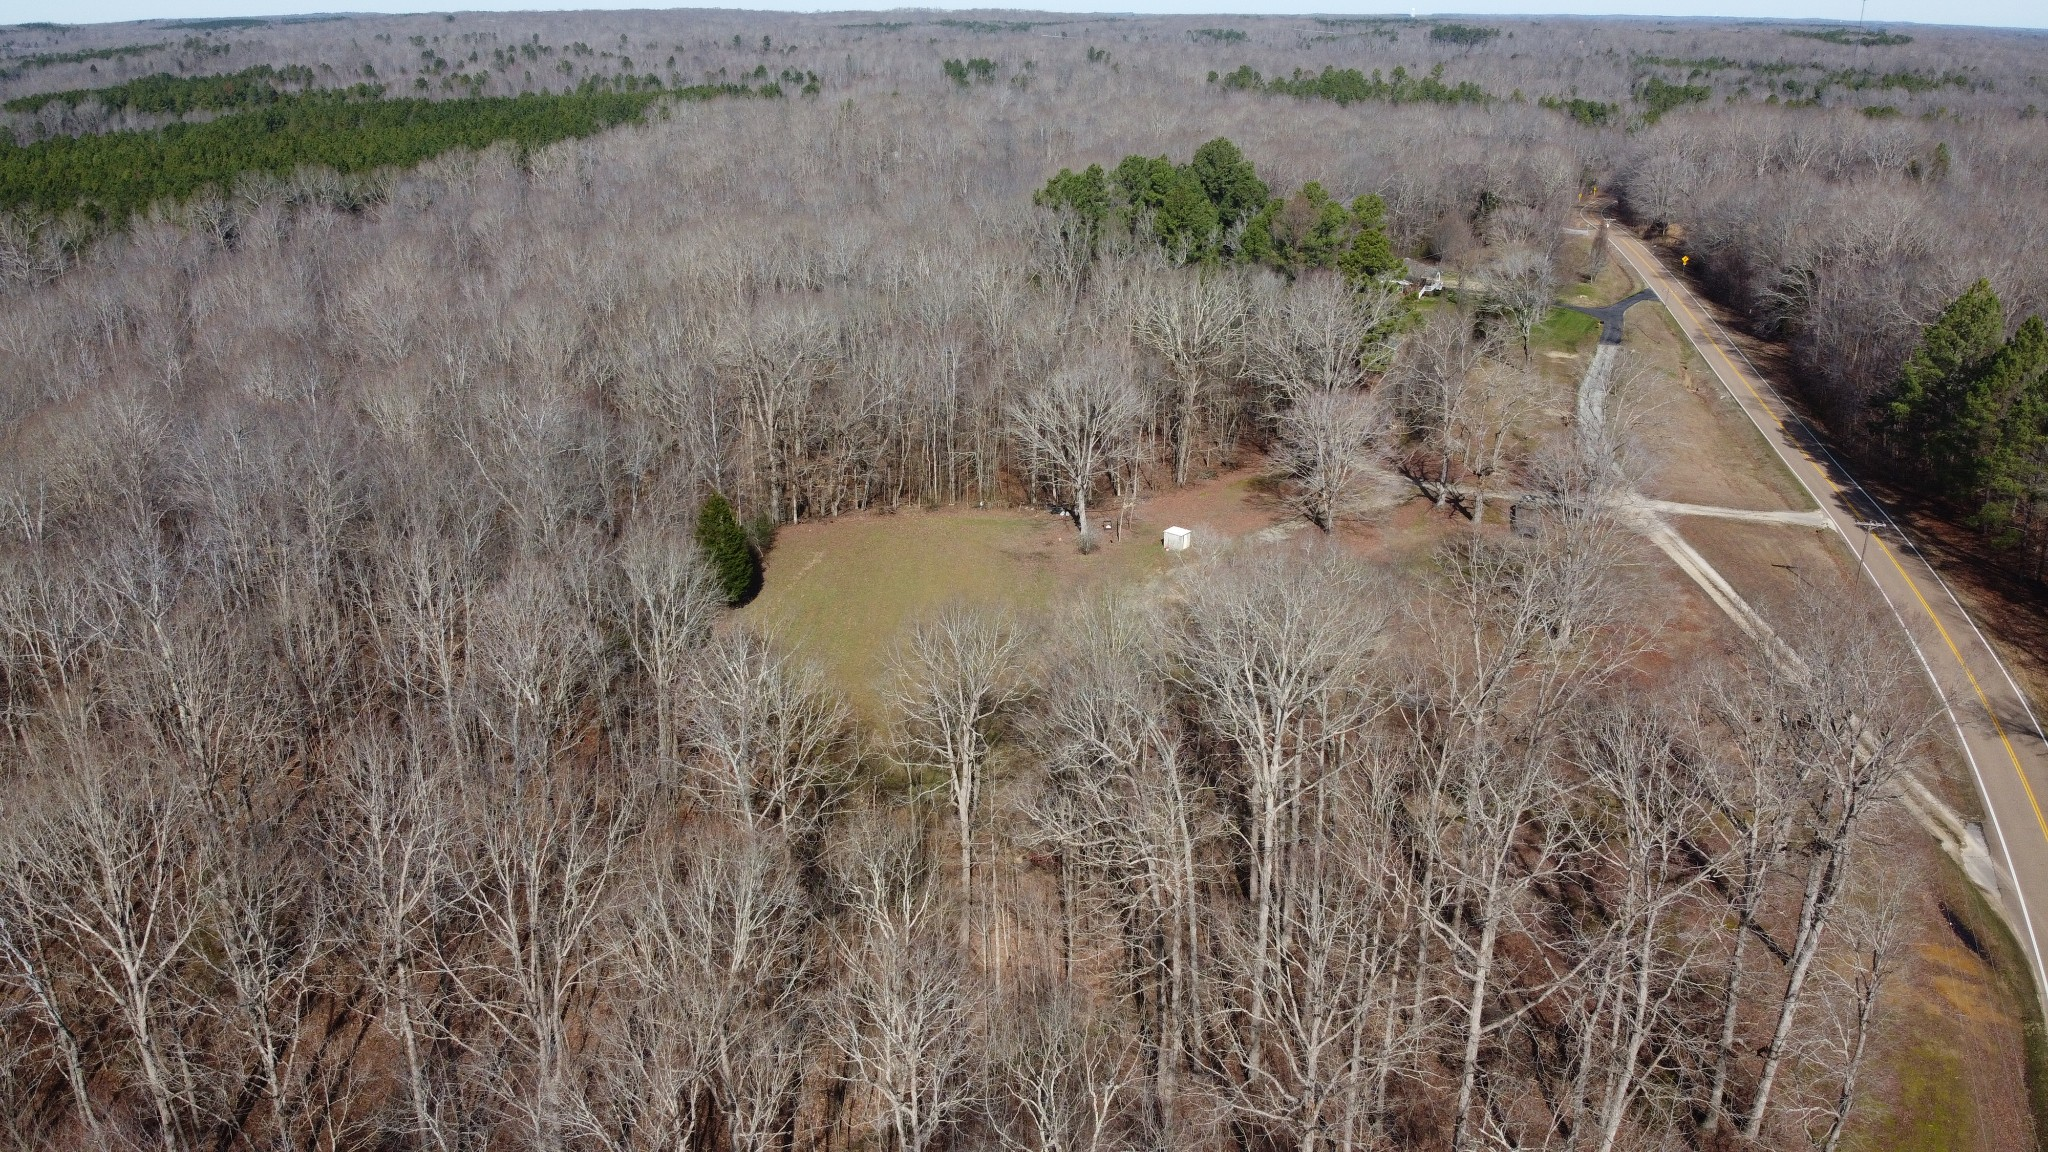 2273 highway 192, N, Holladay, TN 38341 - Holladay, TN real estate listing